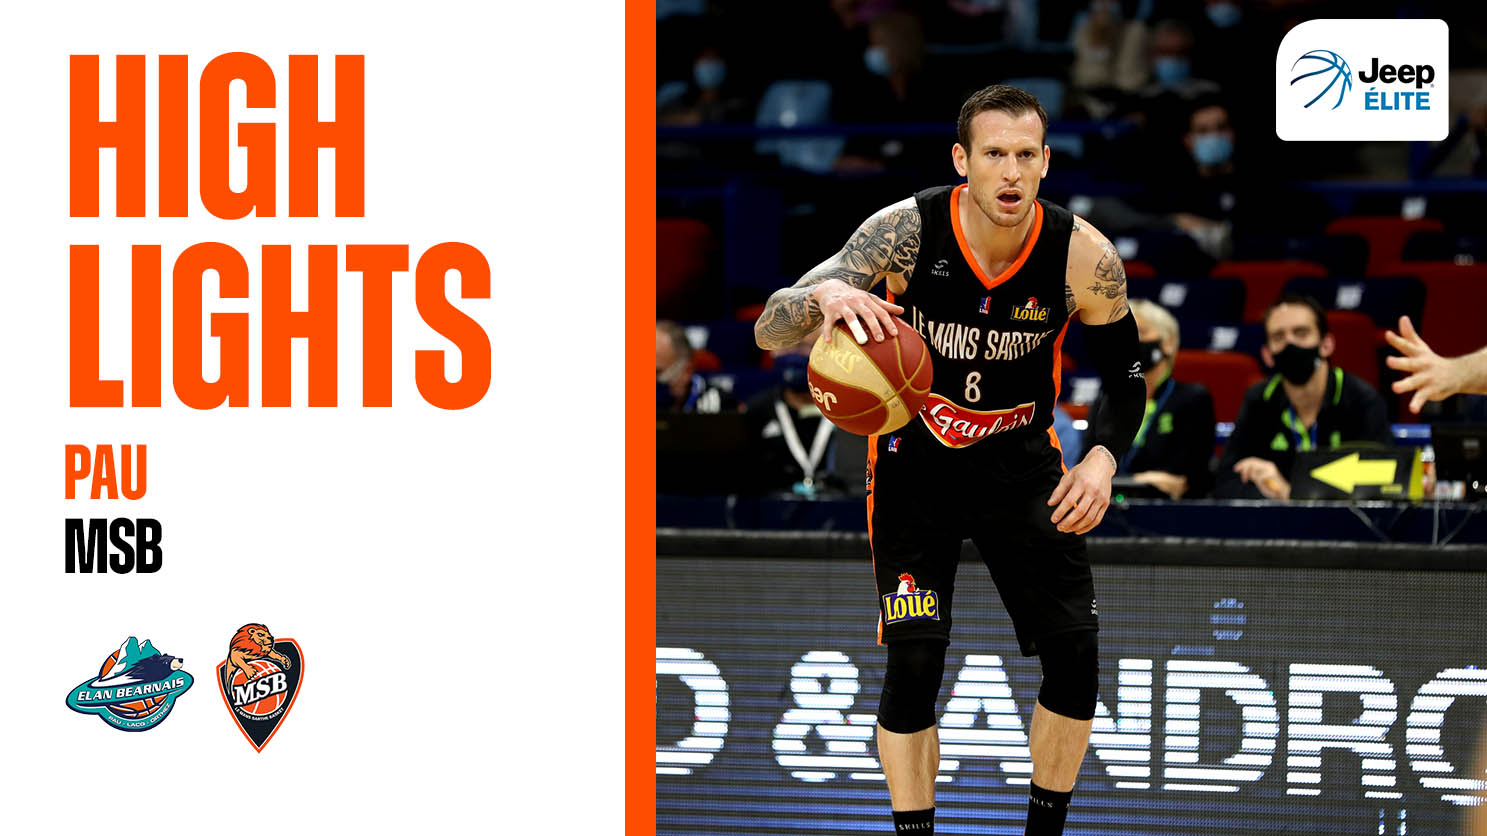 Highlights | Pau - MSB